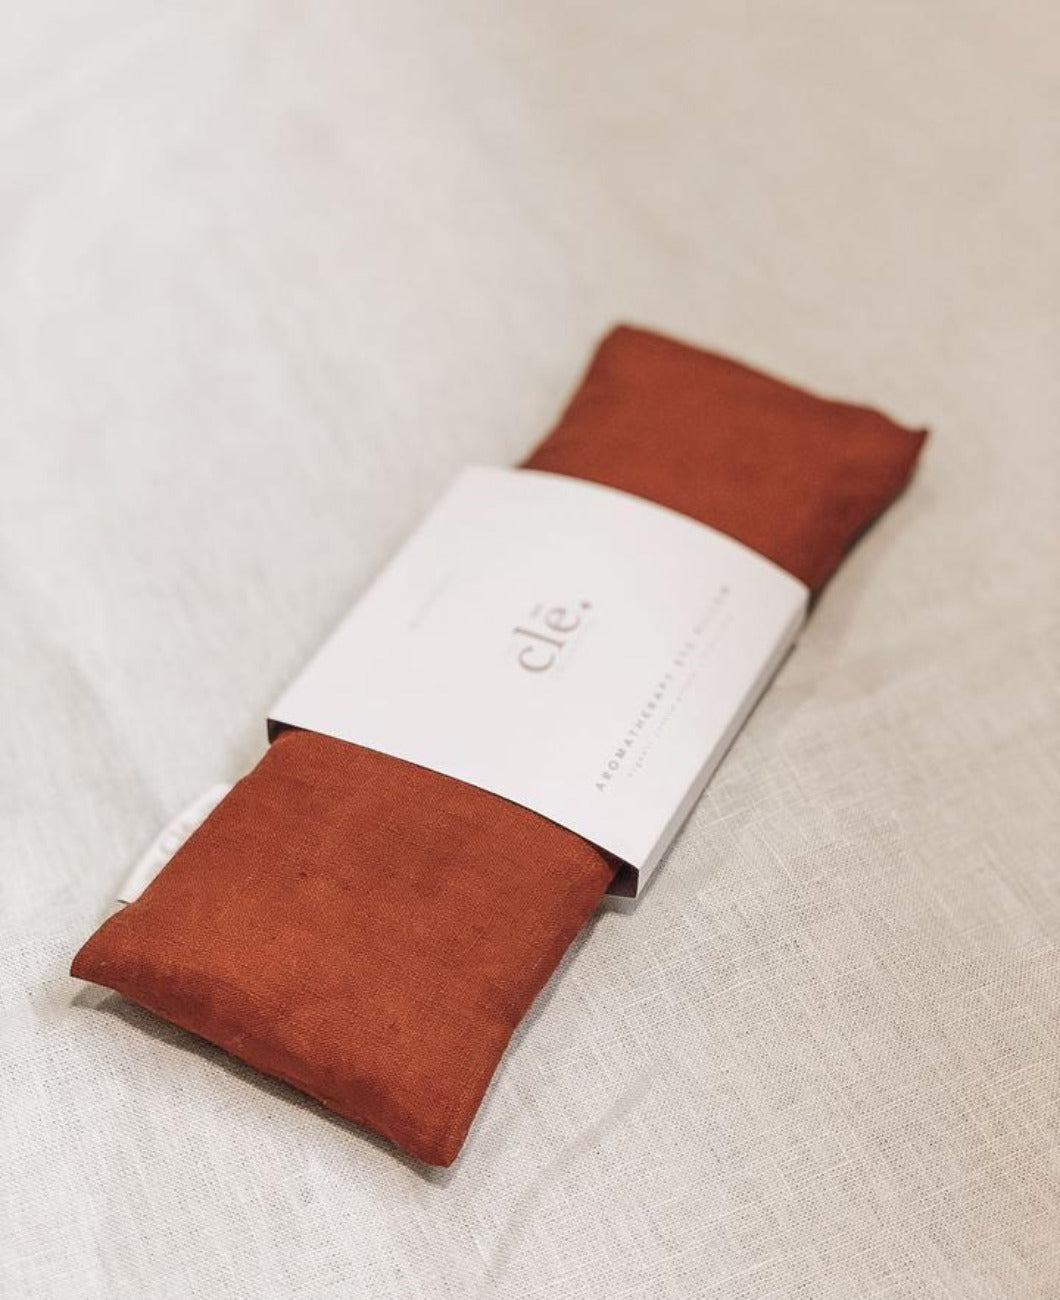 Manifest - Aromatherapy Eye Pillow